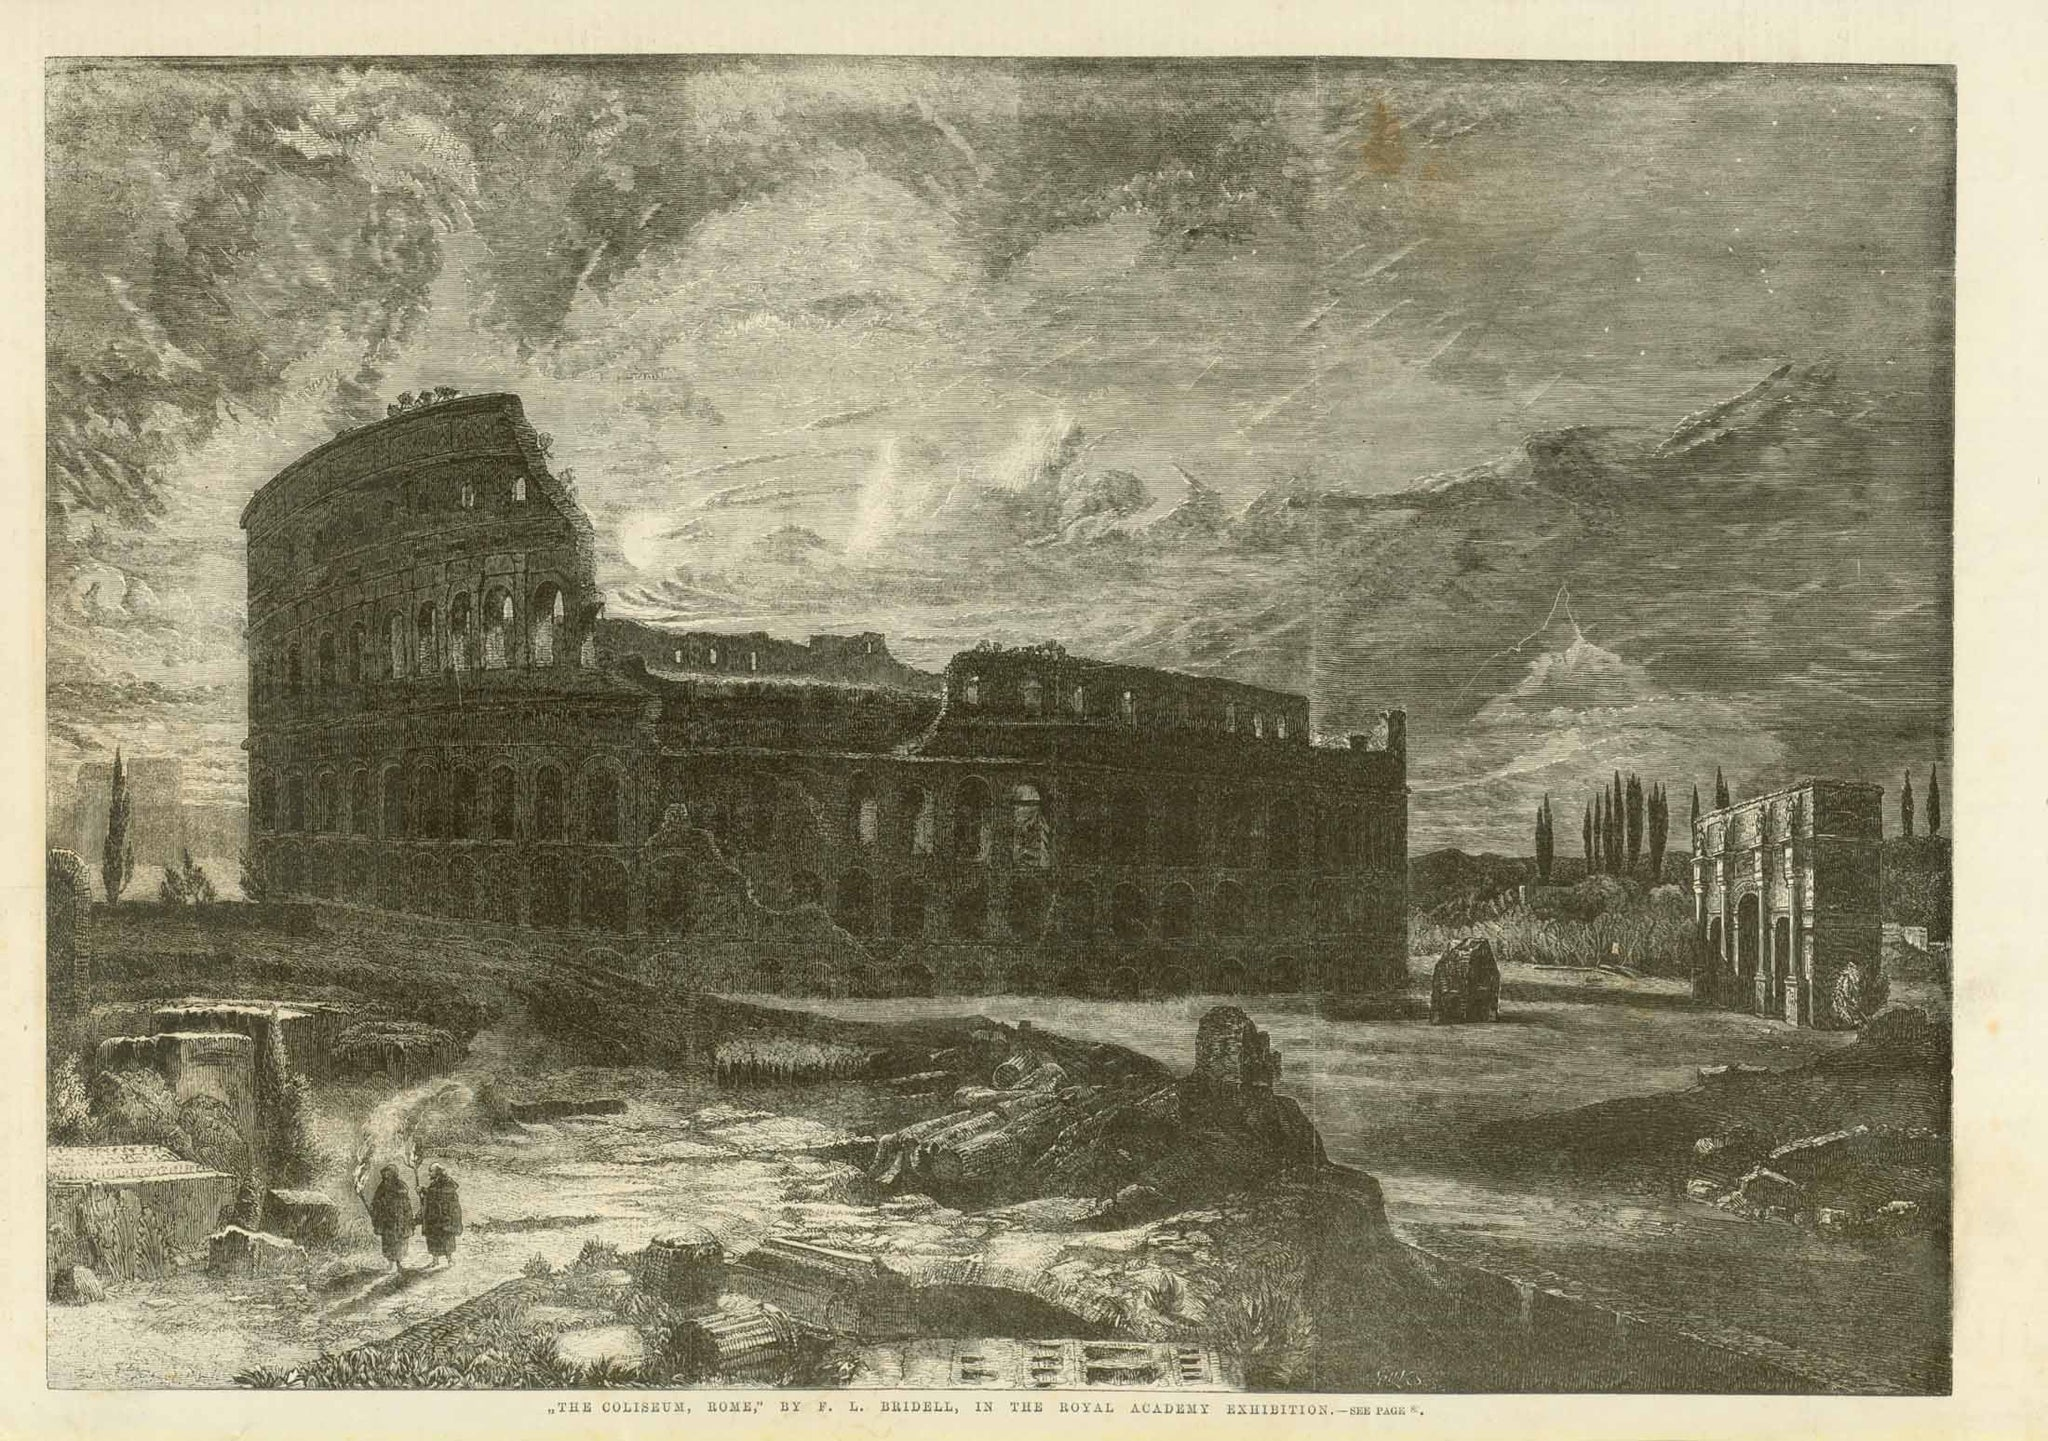 """The Colosseum, Rome""  Wood engraving after the painting by F. L. Bridell. Published 1860.  Light spot in upper right sky area."